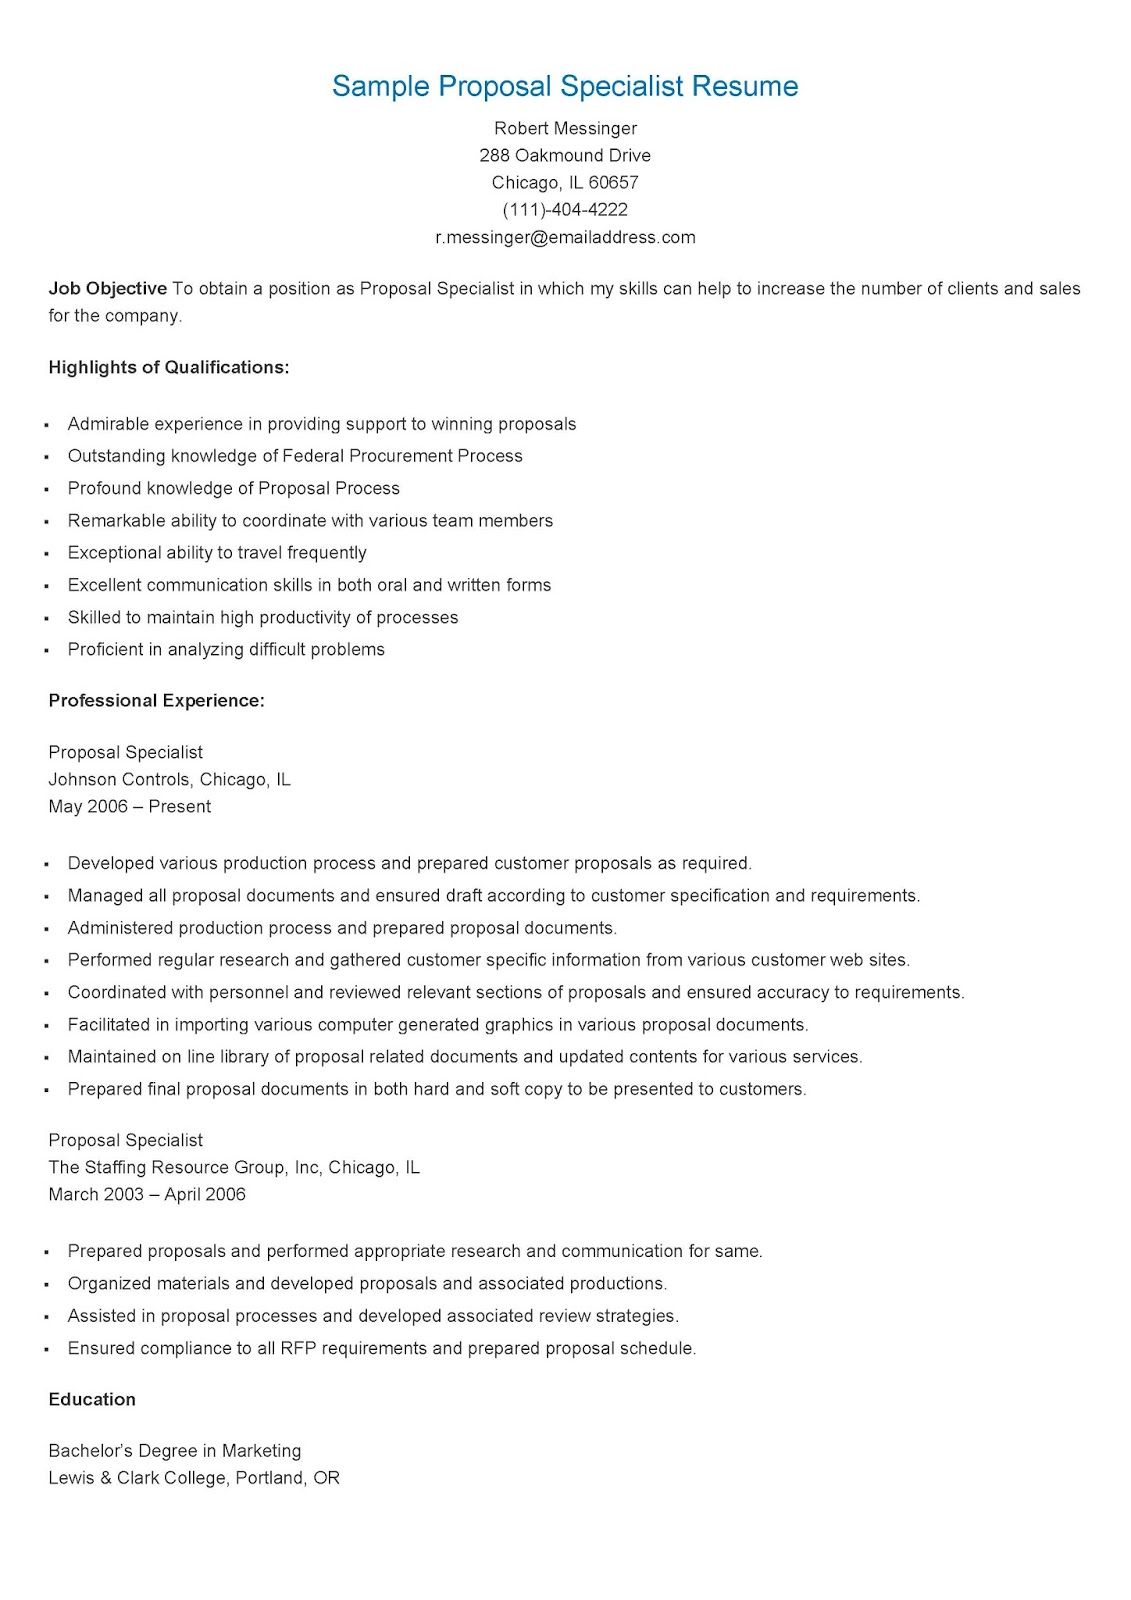 Sample Proposal Specialist Resume